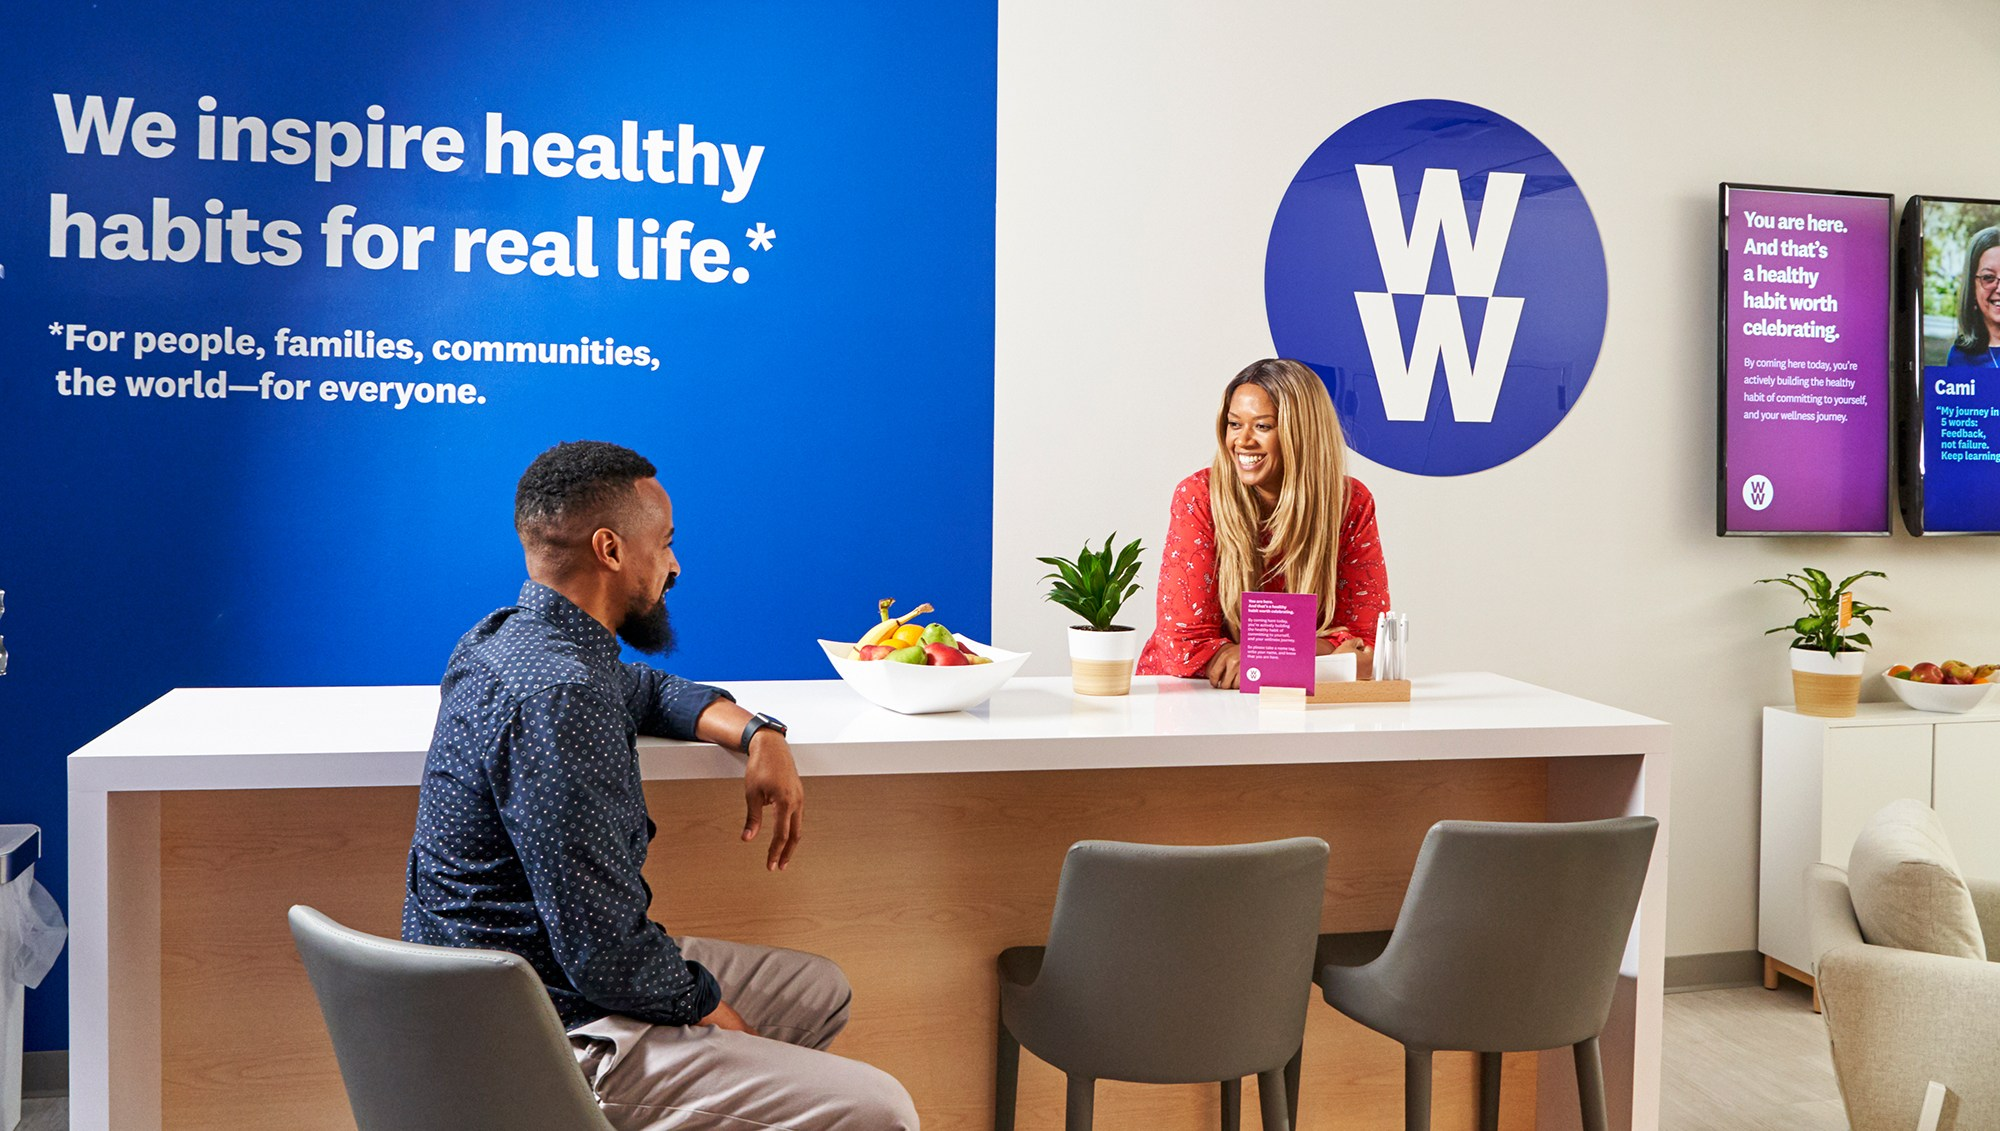 Weight Watchers Rebrands to Become WW, Will Focus on 'Overall Health and Well Being'